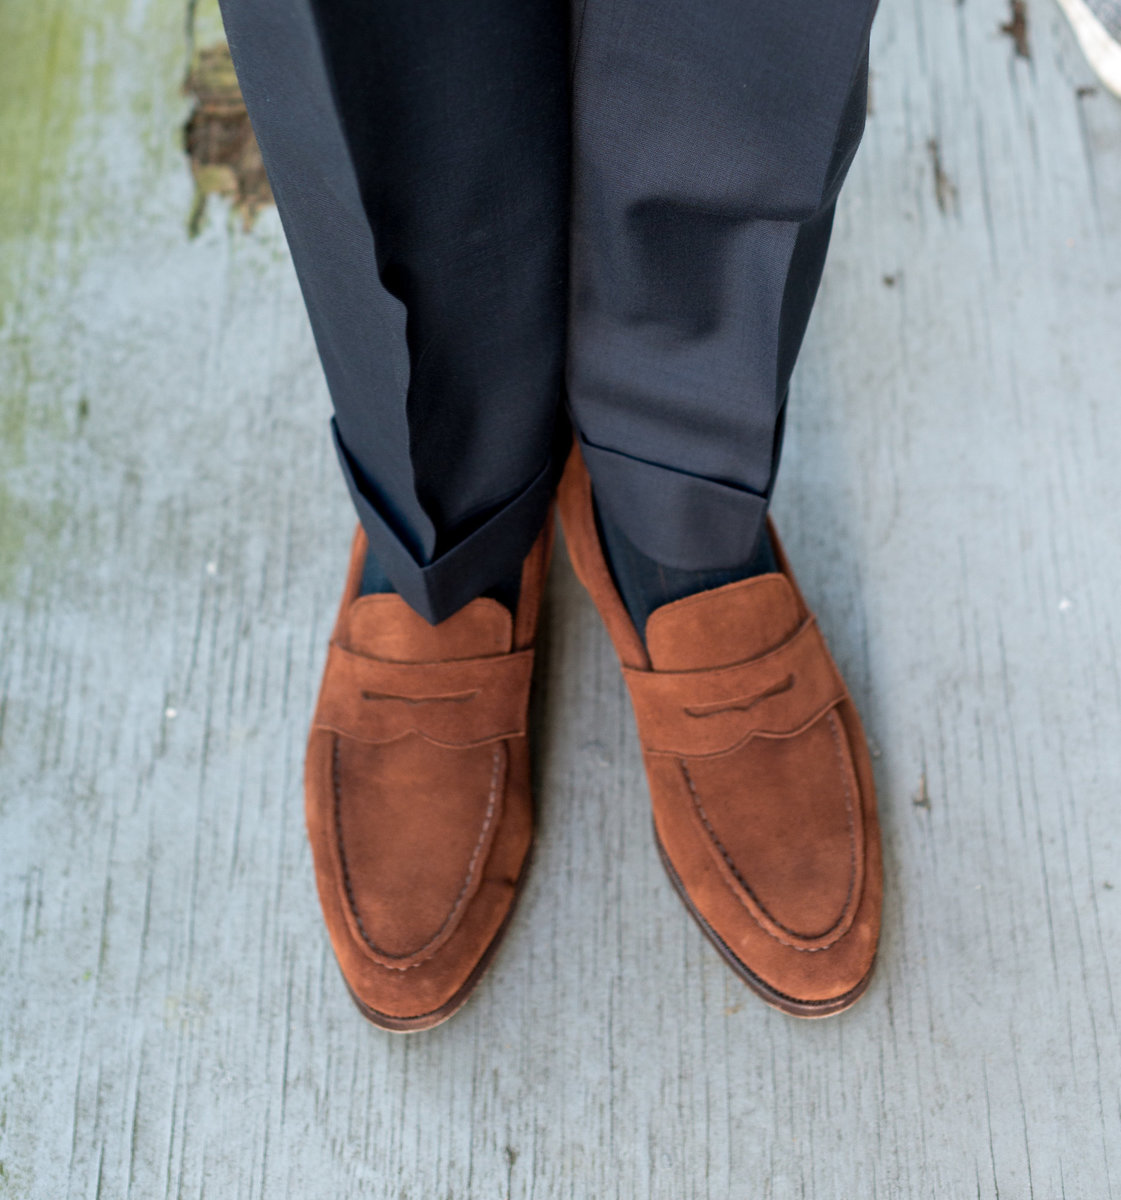 penny loafers.jpg